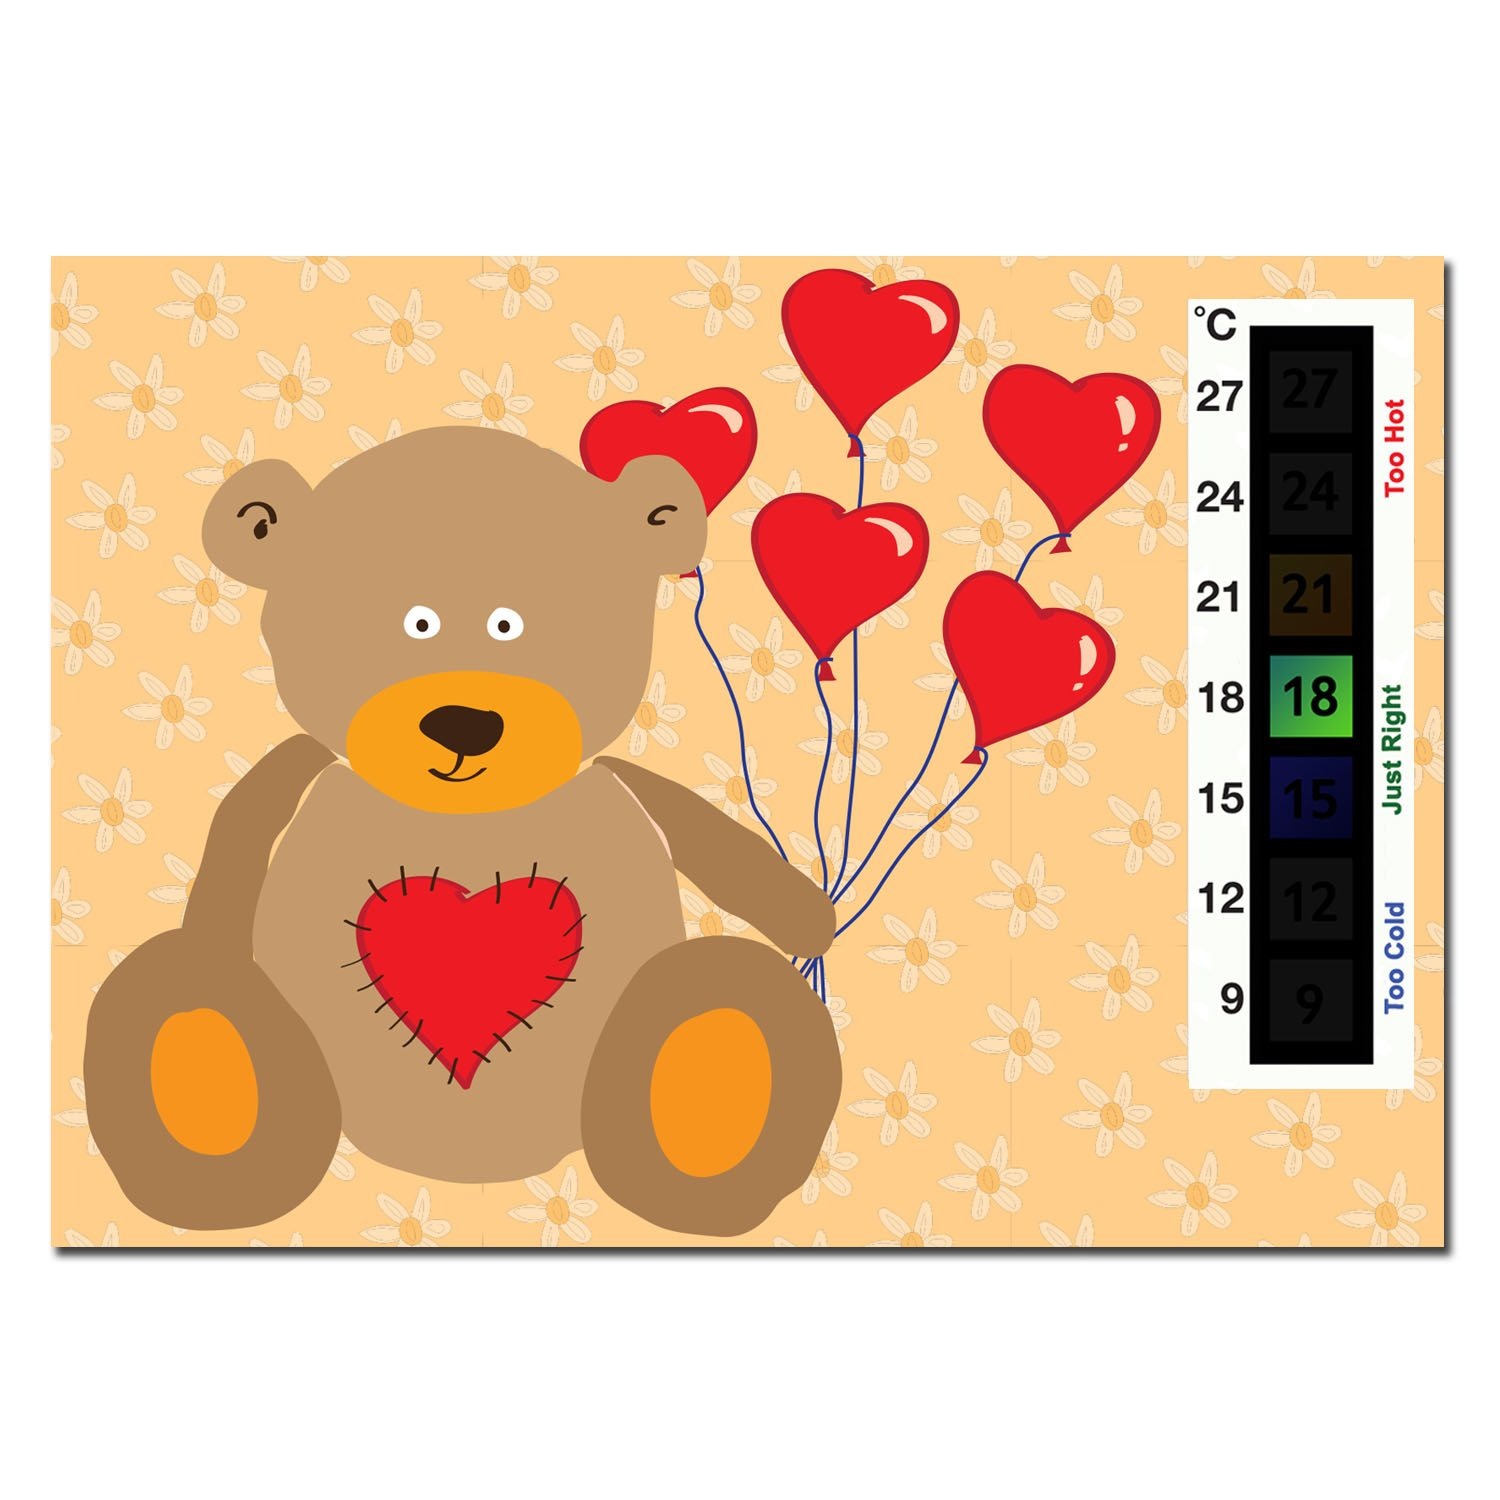 Happy Family Baby Teddy Bear & Heart Balloons Nursery Room Safety Temperature Thermometer Monitor Good Life Innovations